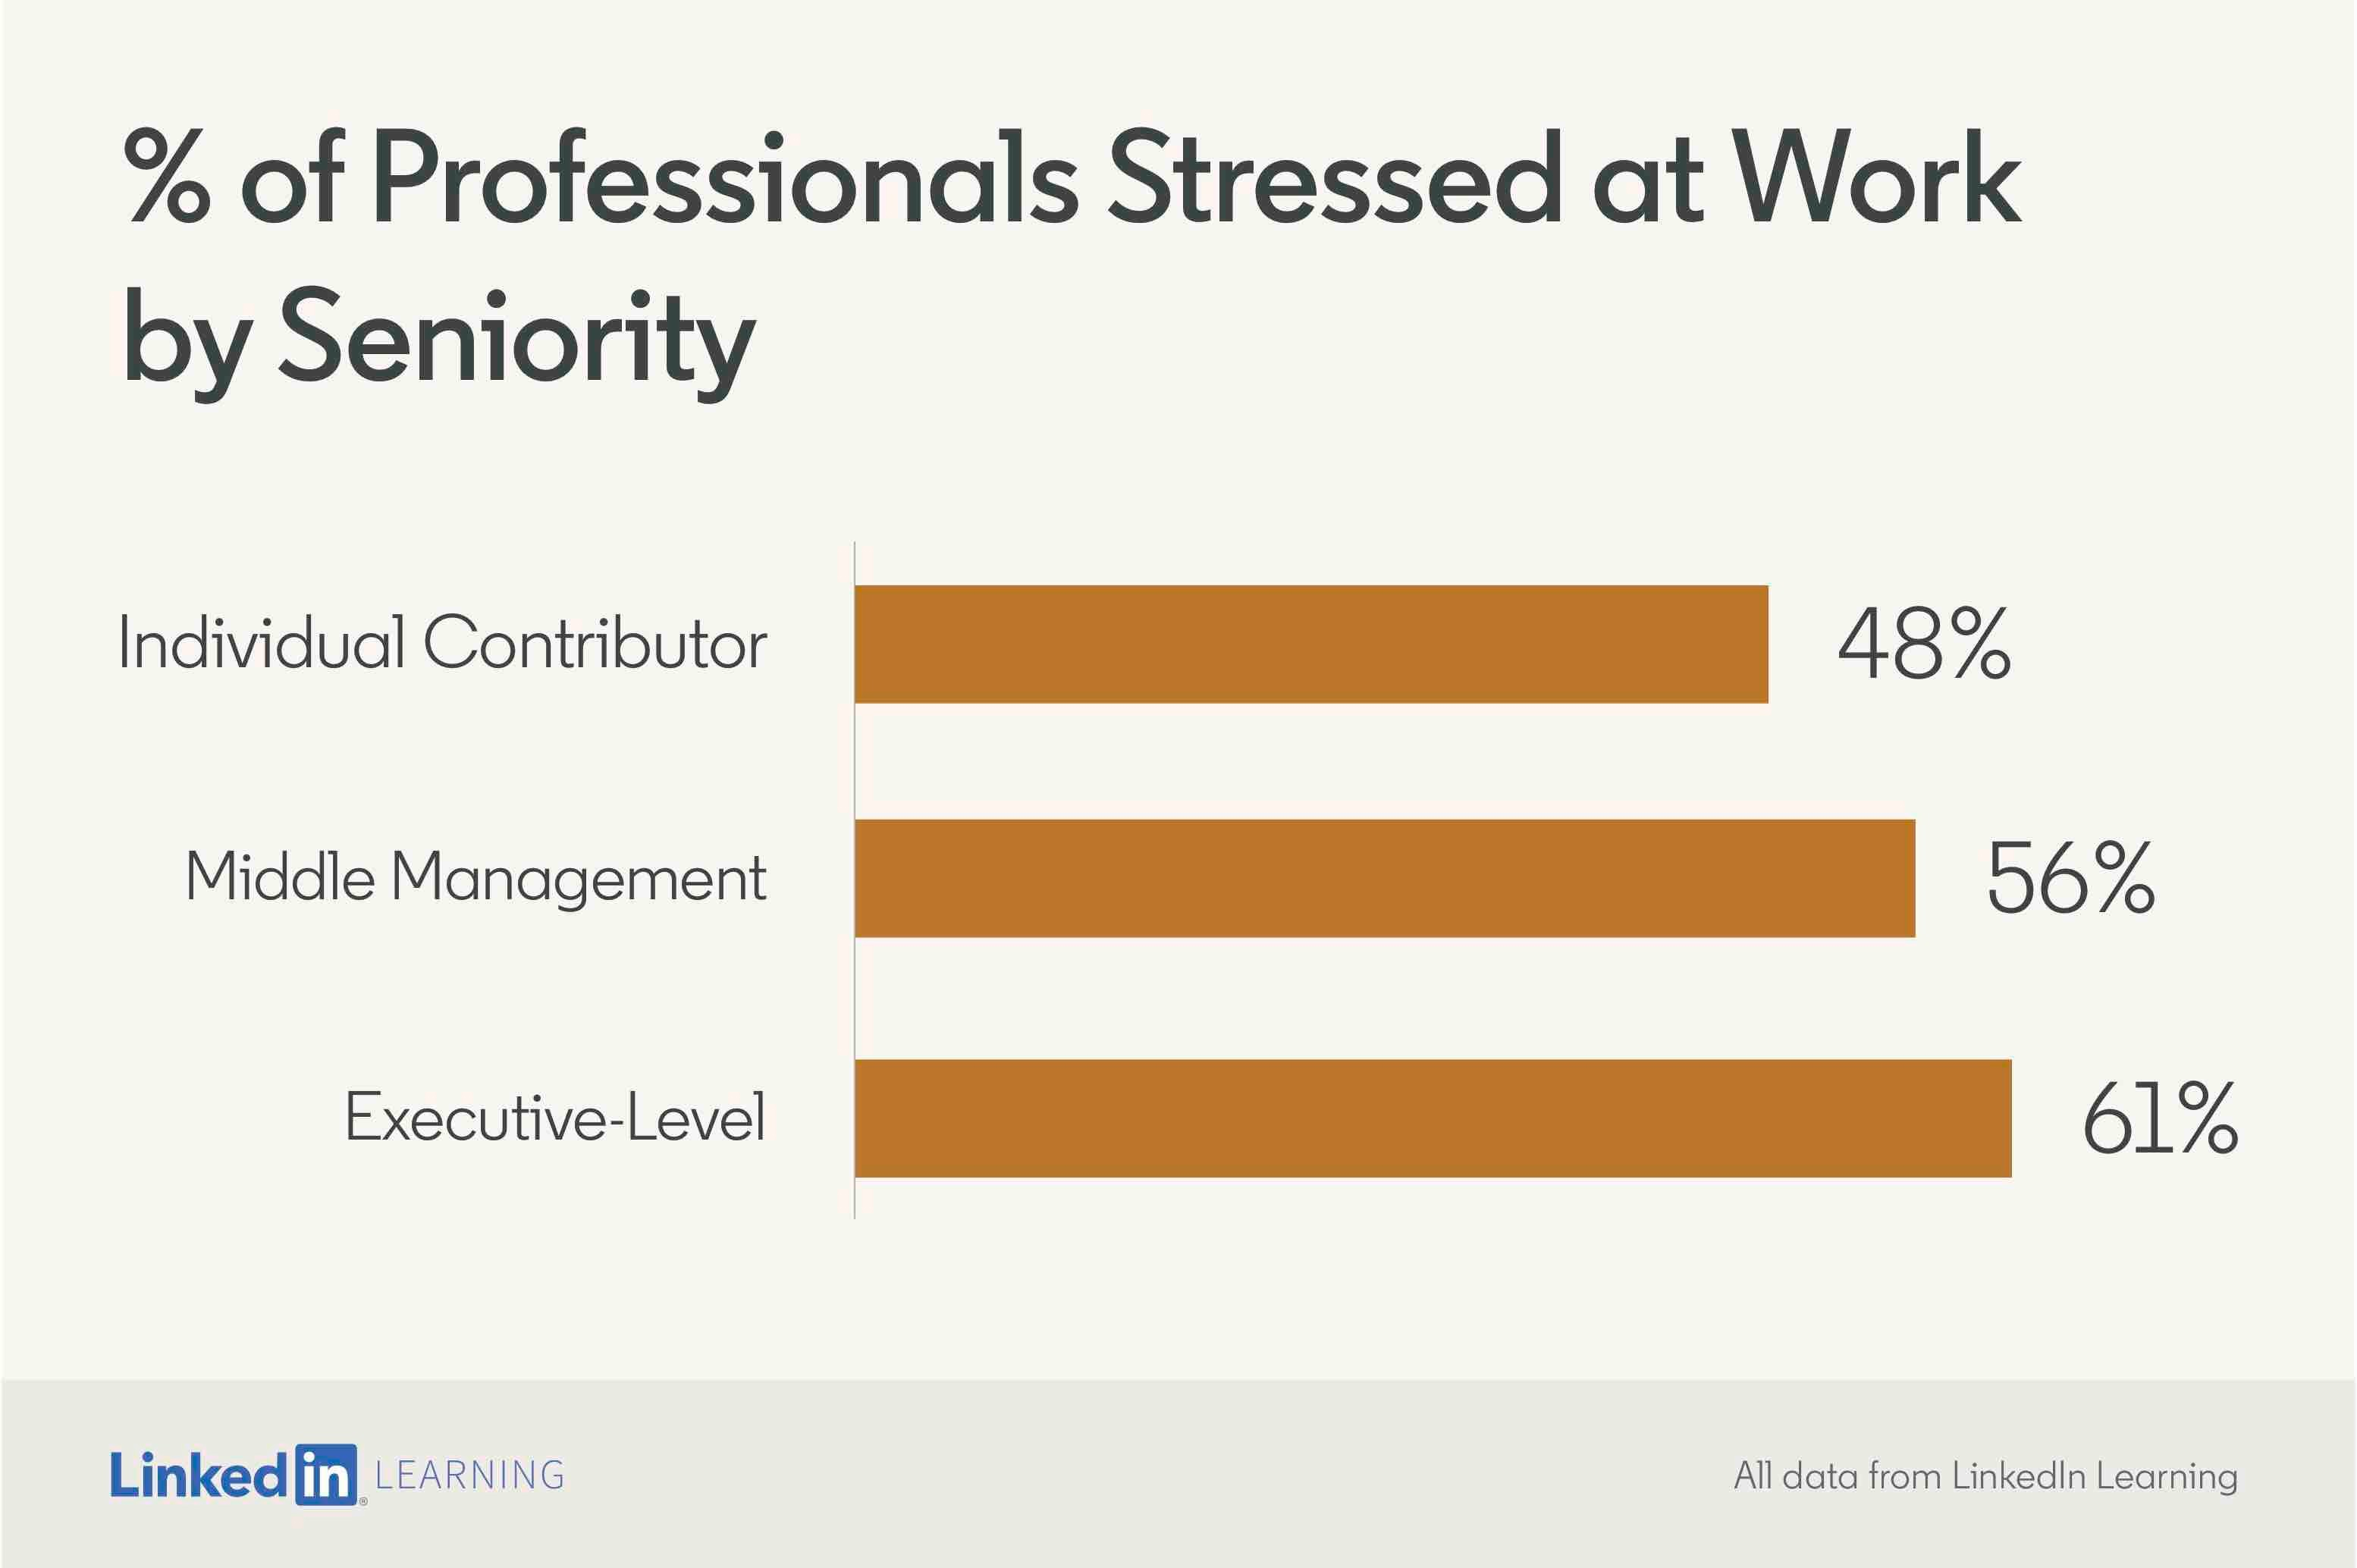 See how stress is affected by seniority at work.